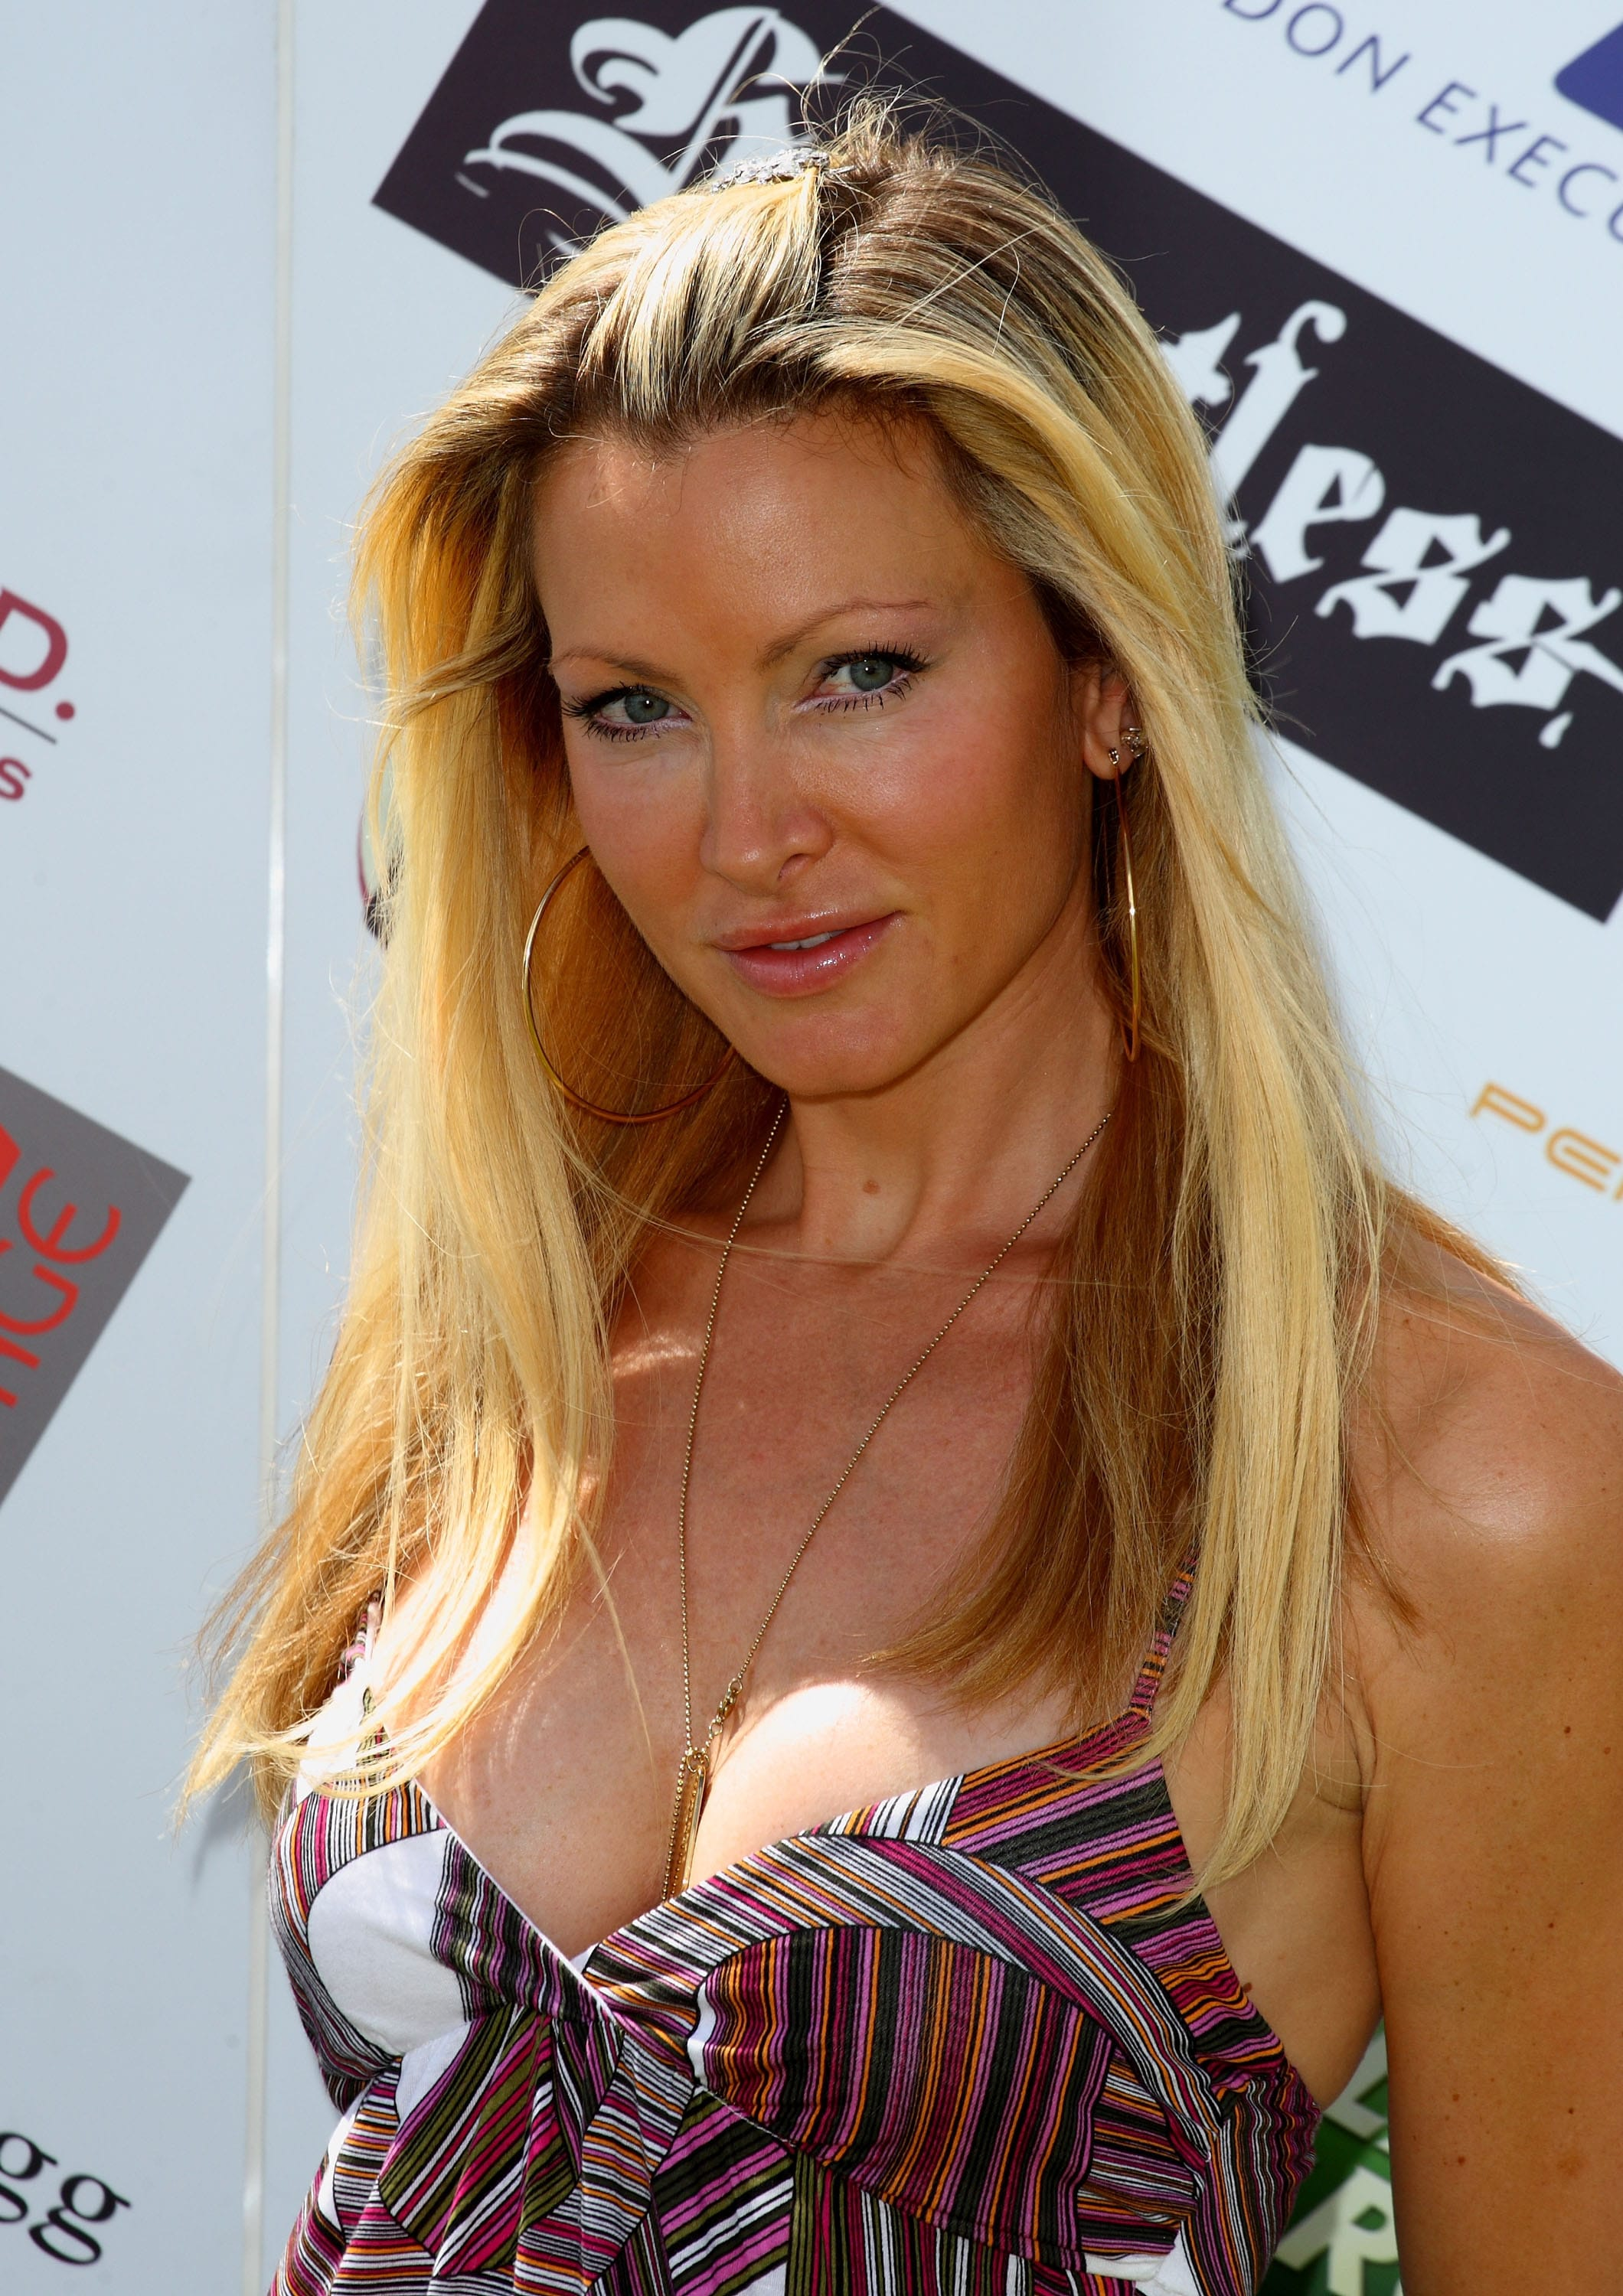 Caprice Bourret Wallpapers